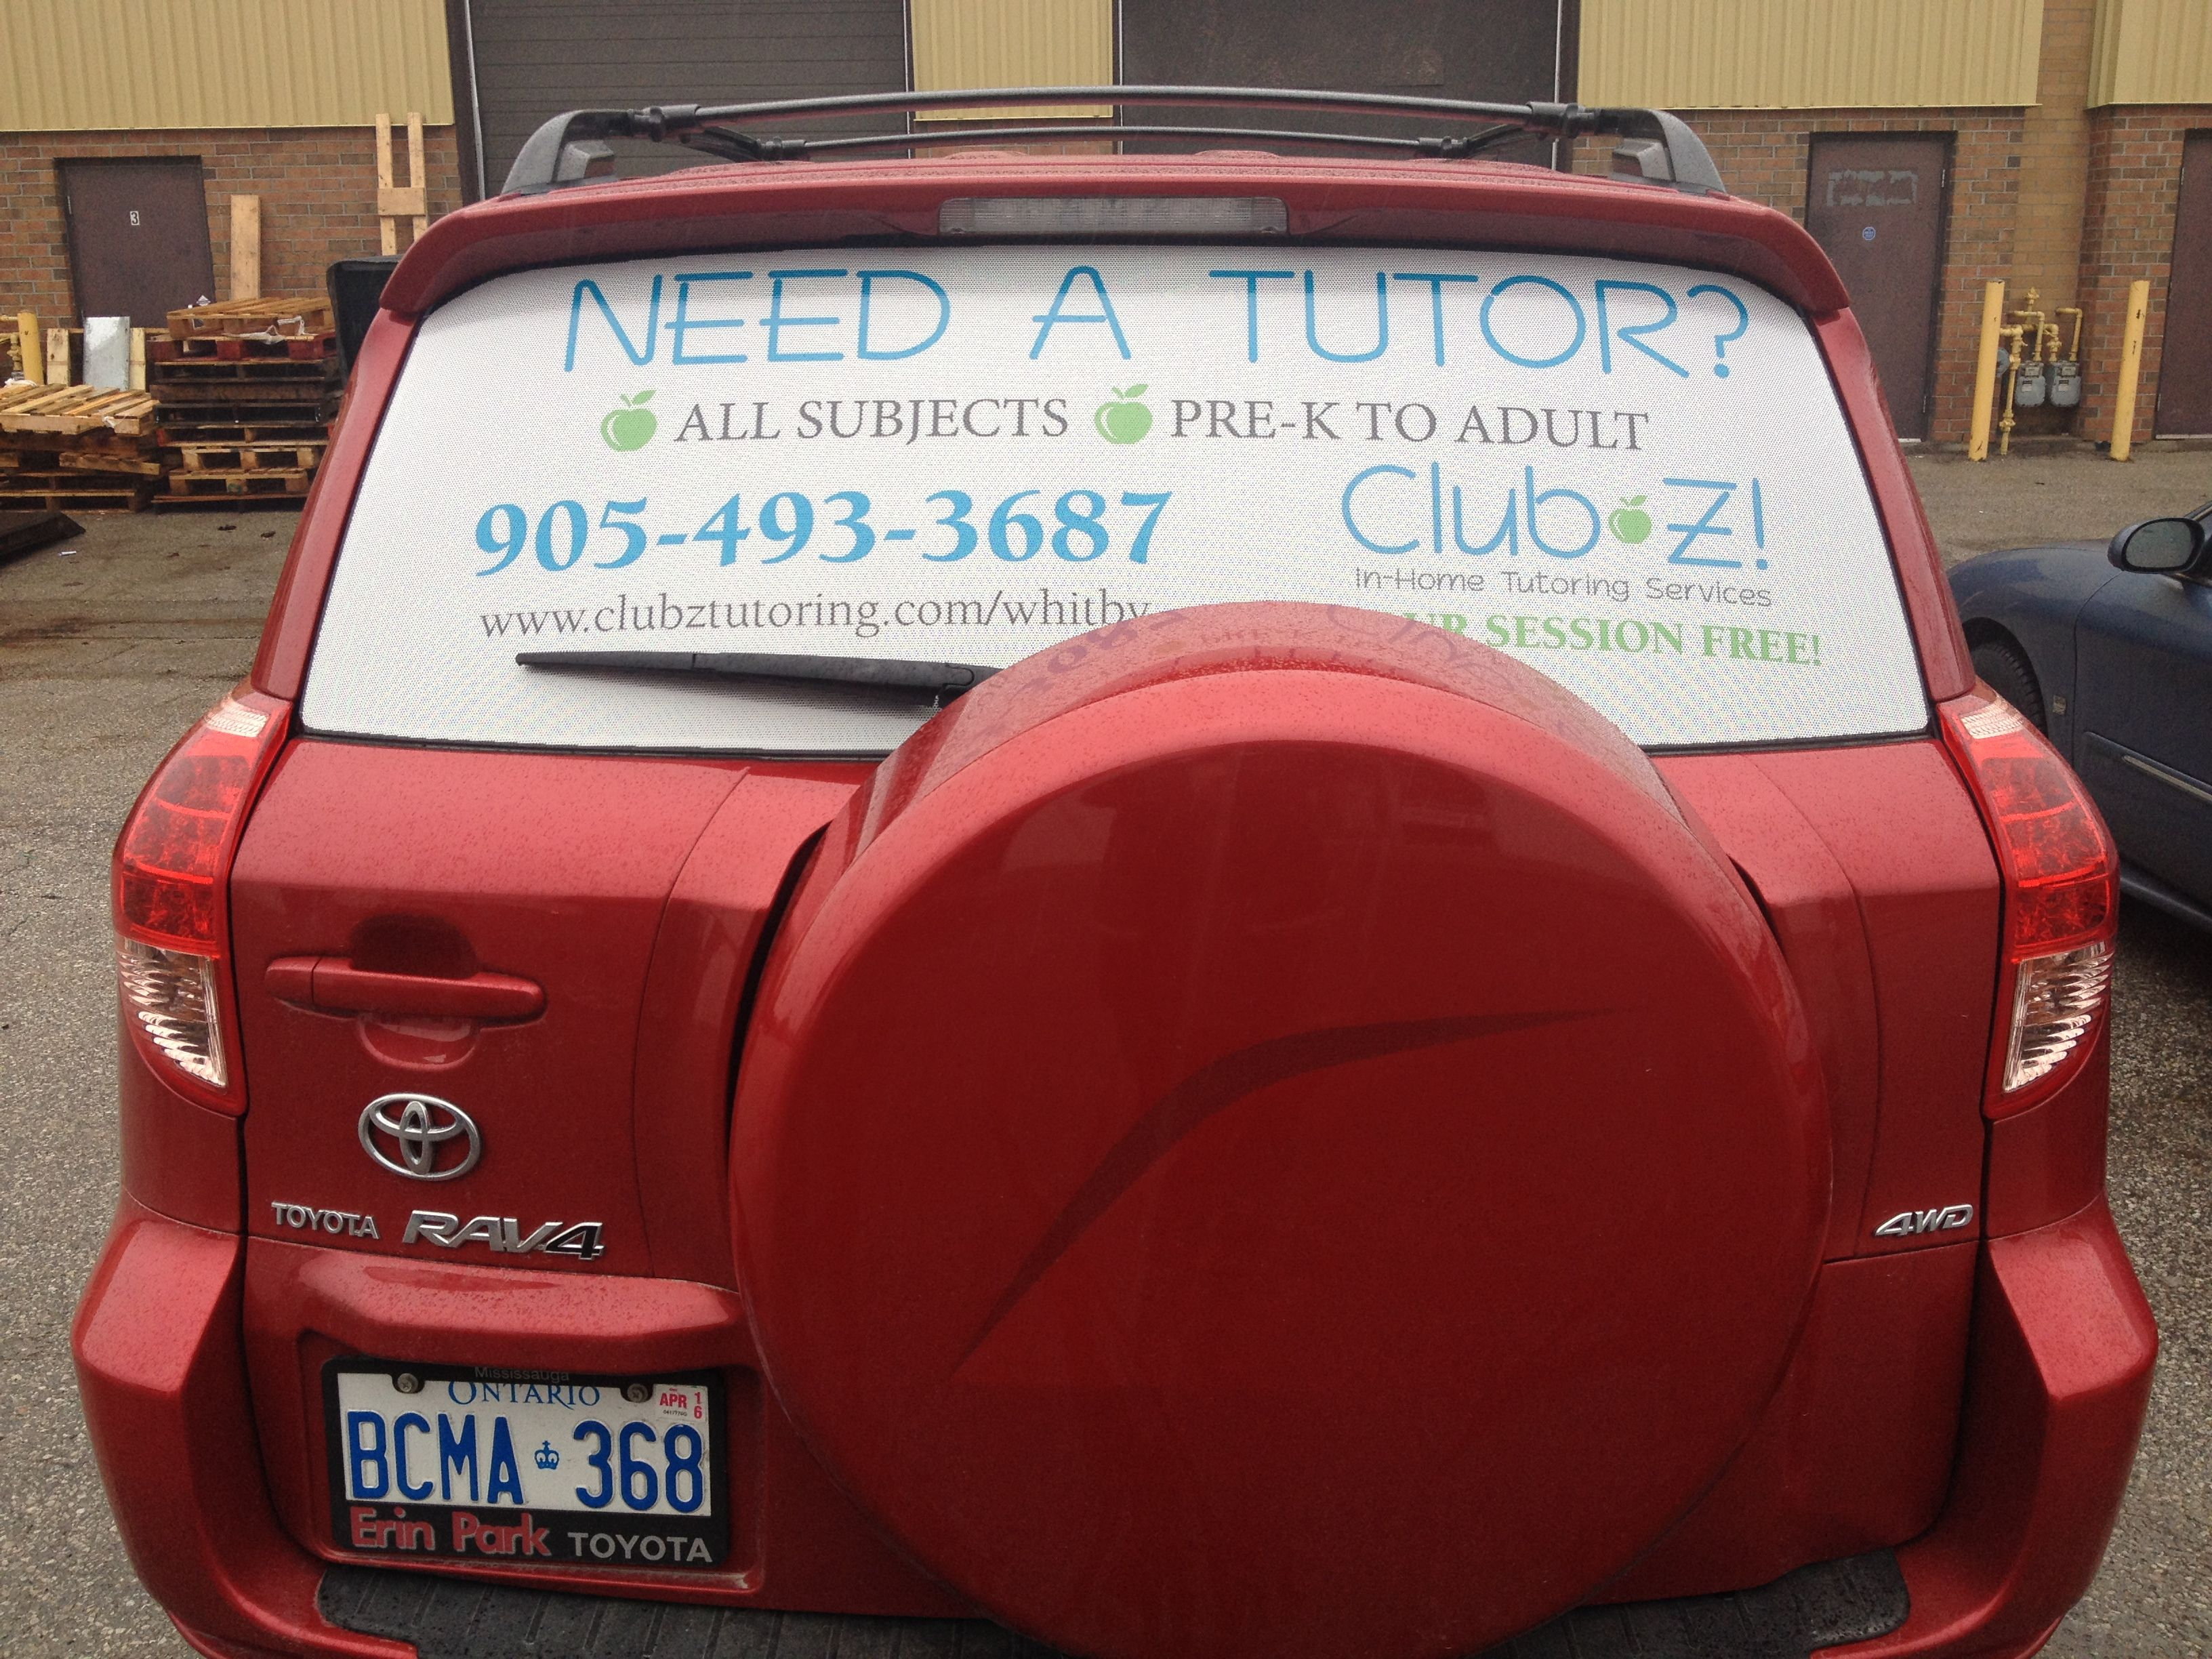 First Job Complete This Morning Fresh Clean Rear Window Perforated Vinyl Graphics Installed For Club Z In Home Tutoring Vinyl Graphics Car Wrap Rear Window [ 2448 x 3264 Pixel ]